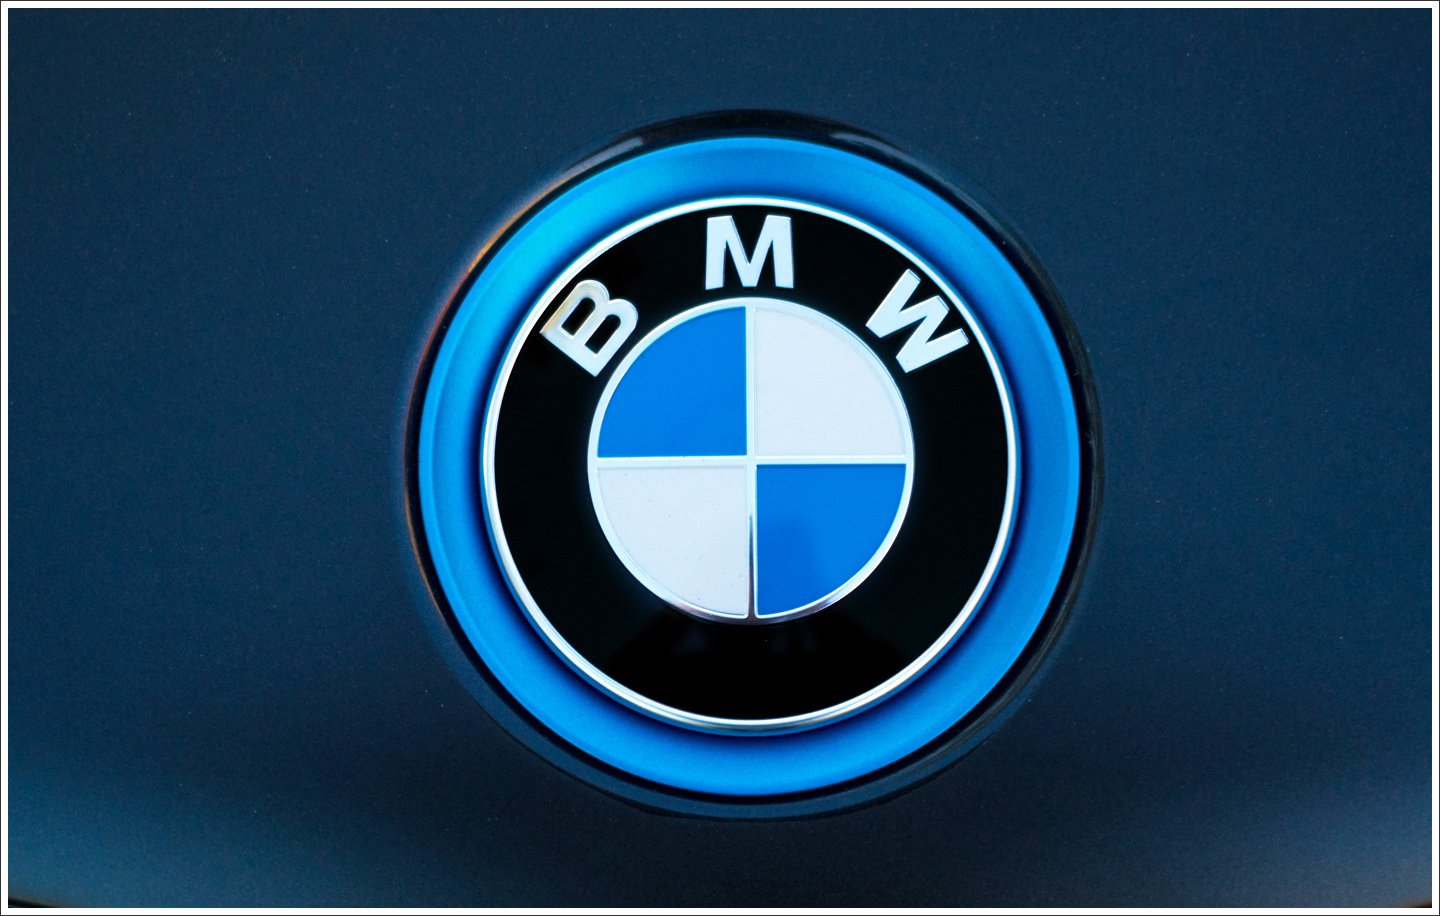 bmw motorcycle logo meaning and history symbol bmw - HD 1440×916